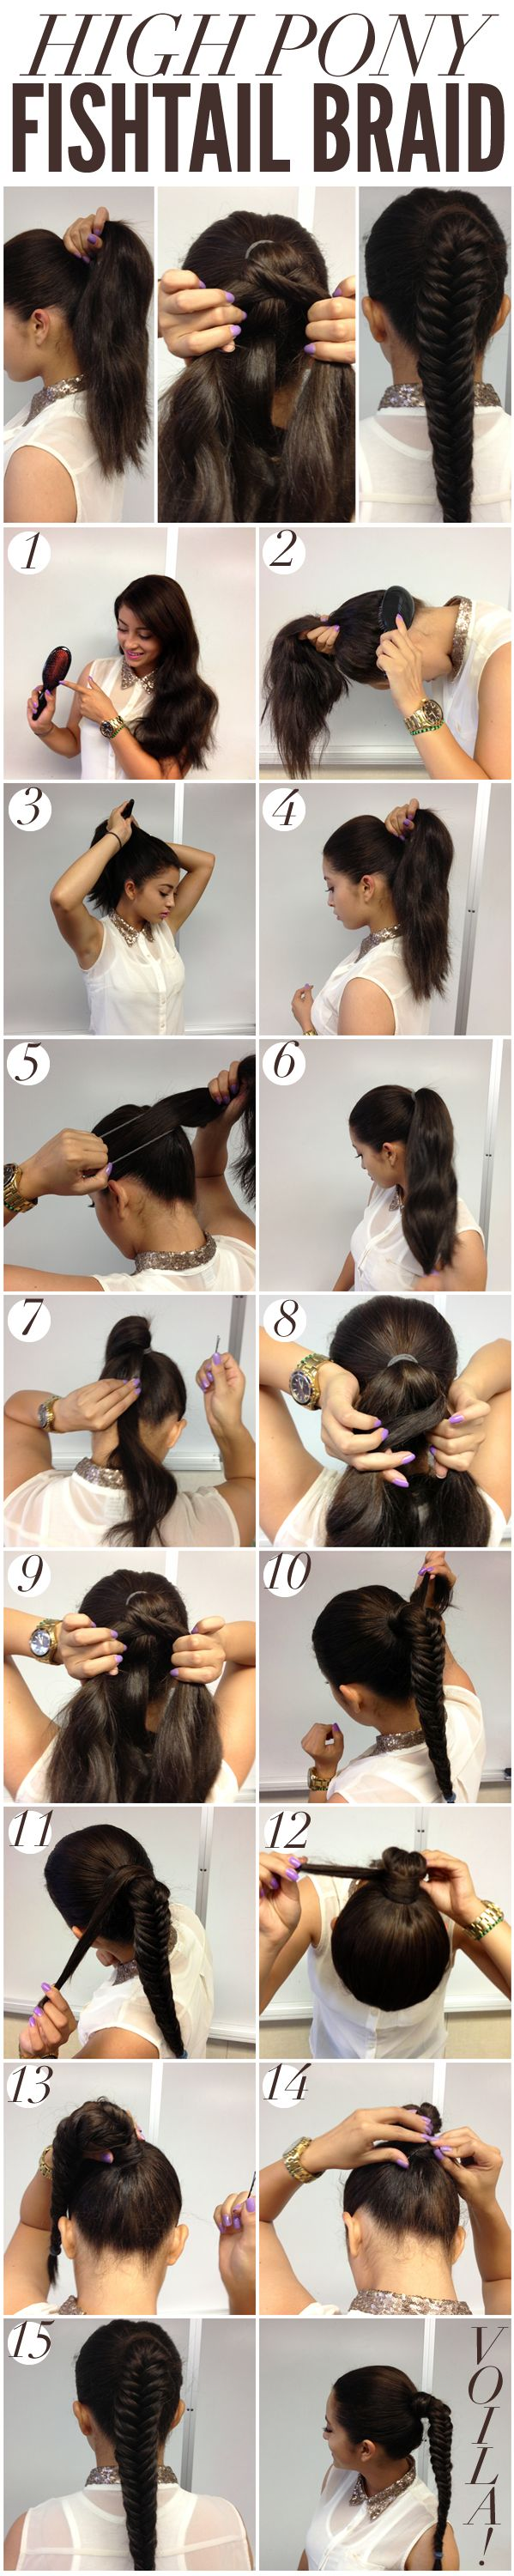 how to fish braid step by step